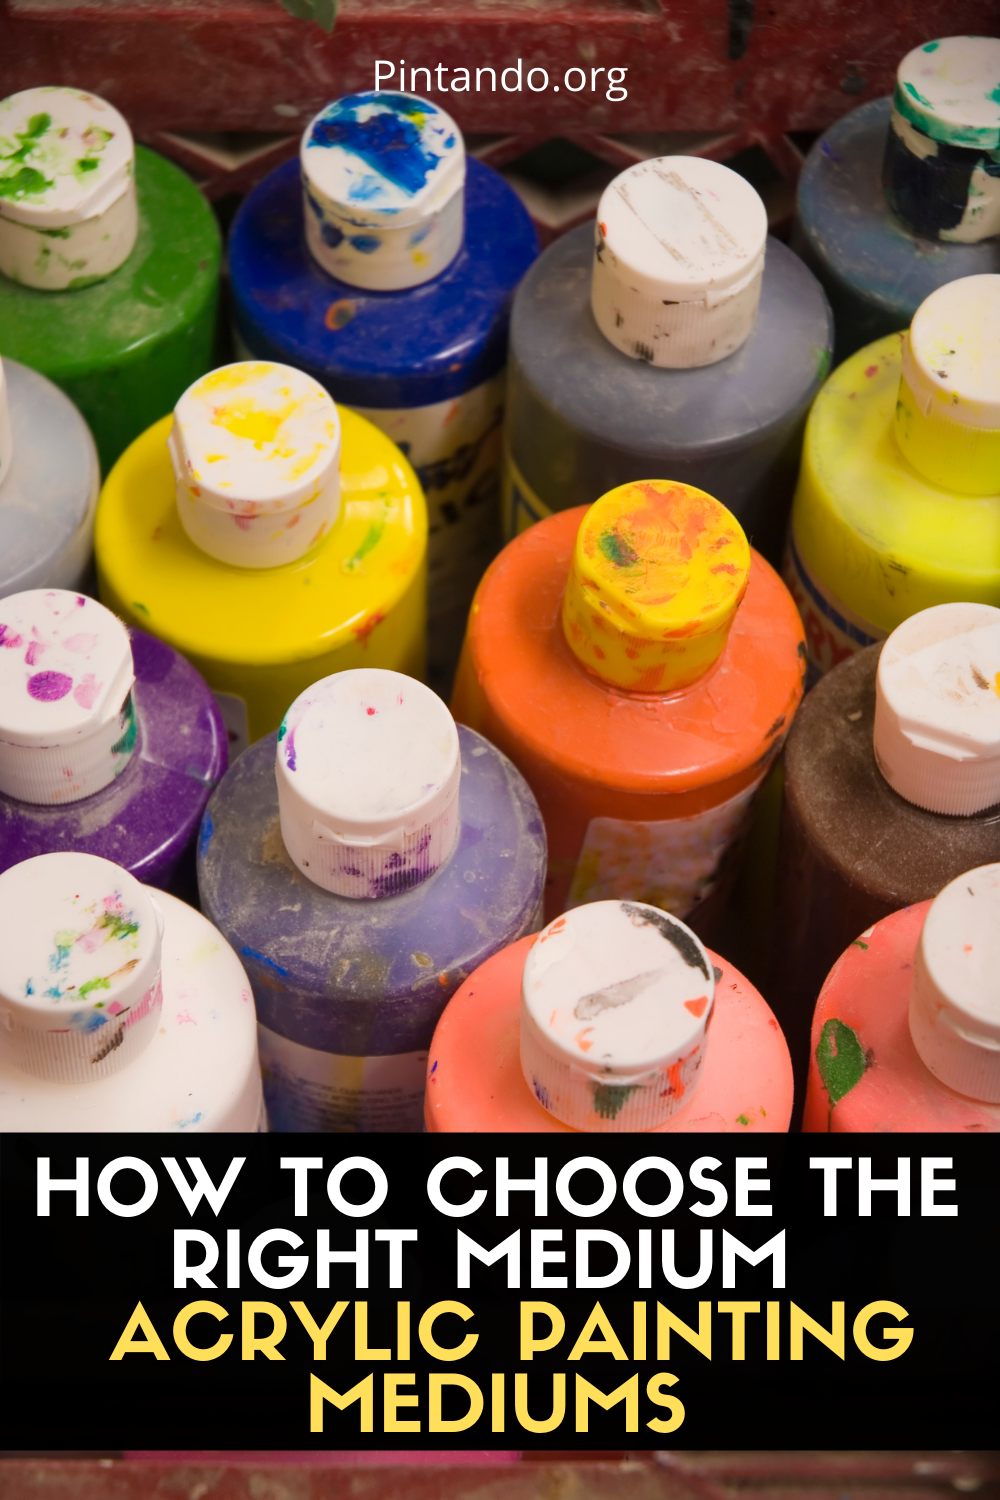 HOW TO CHOOSE THE RIGHT MEDIUM - ACRYLIC PAINTING MEDIUMS